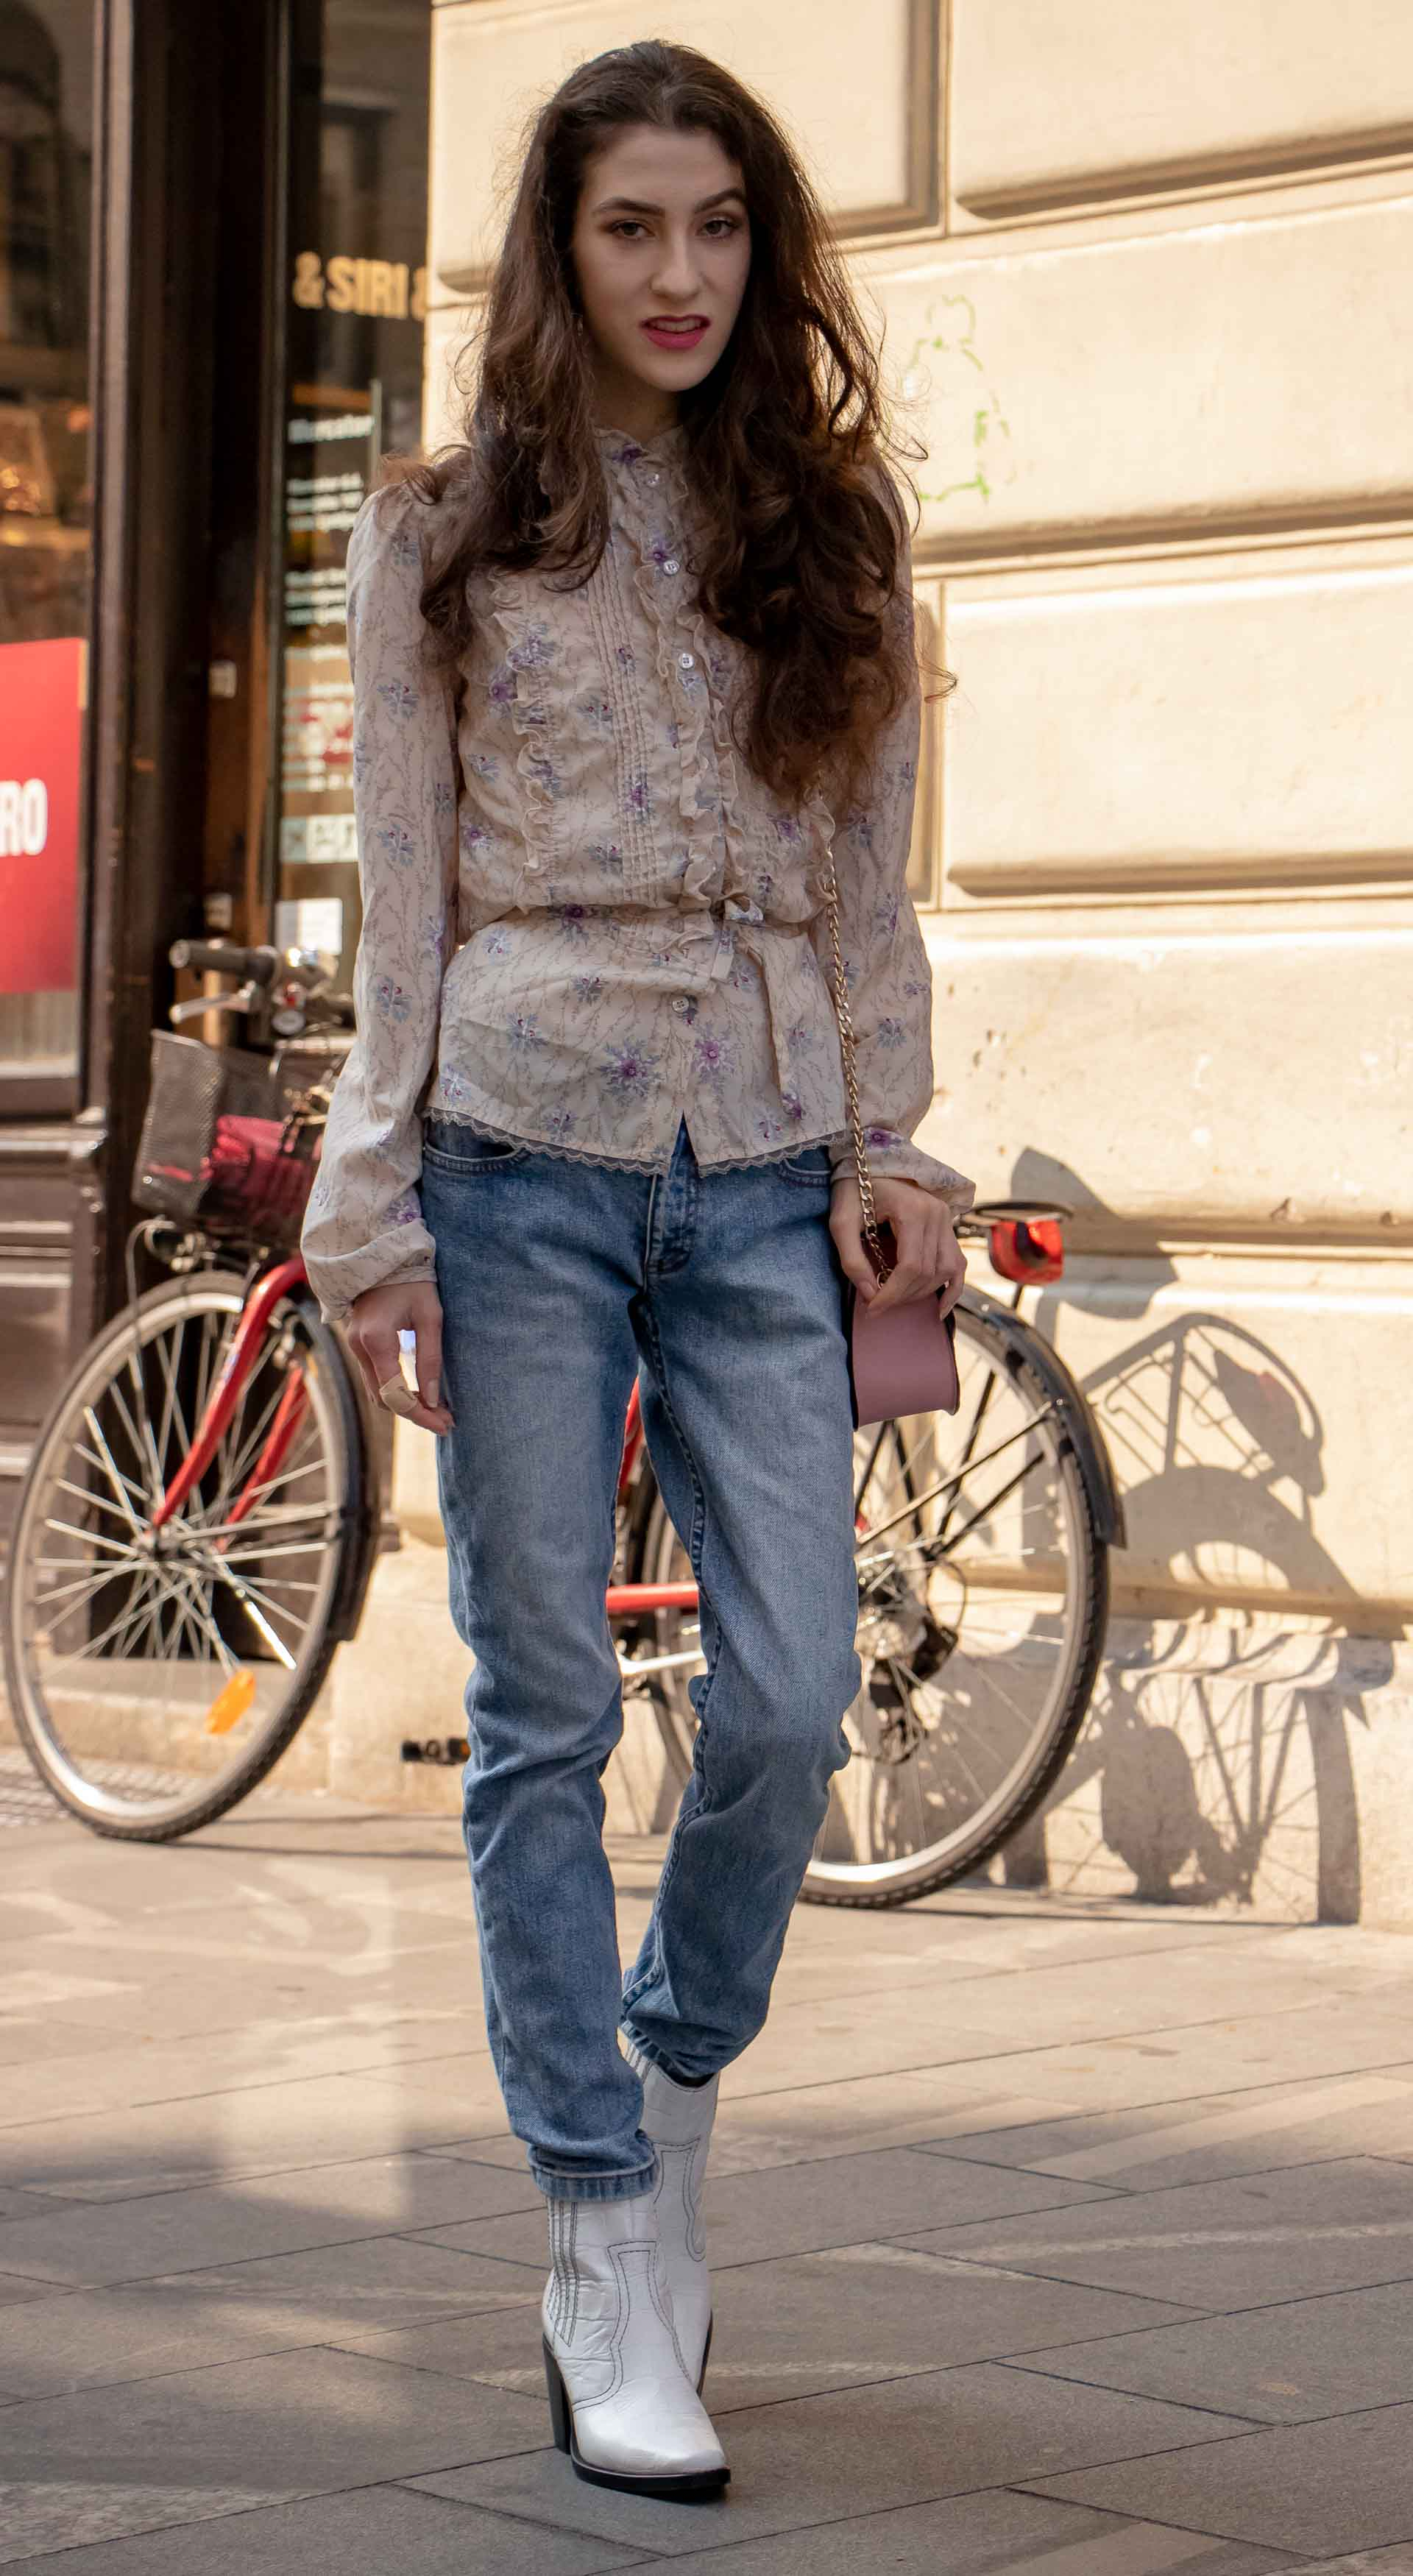 Beautiful Slovenian Fashion Blogger Veronika Lipar of Brunette from Wall wearing white Ganni Western boots, floral long sleeved Prairie shirt, A.P.C. blue jeans on the street in autumn in Ljubljana